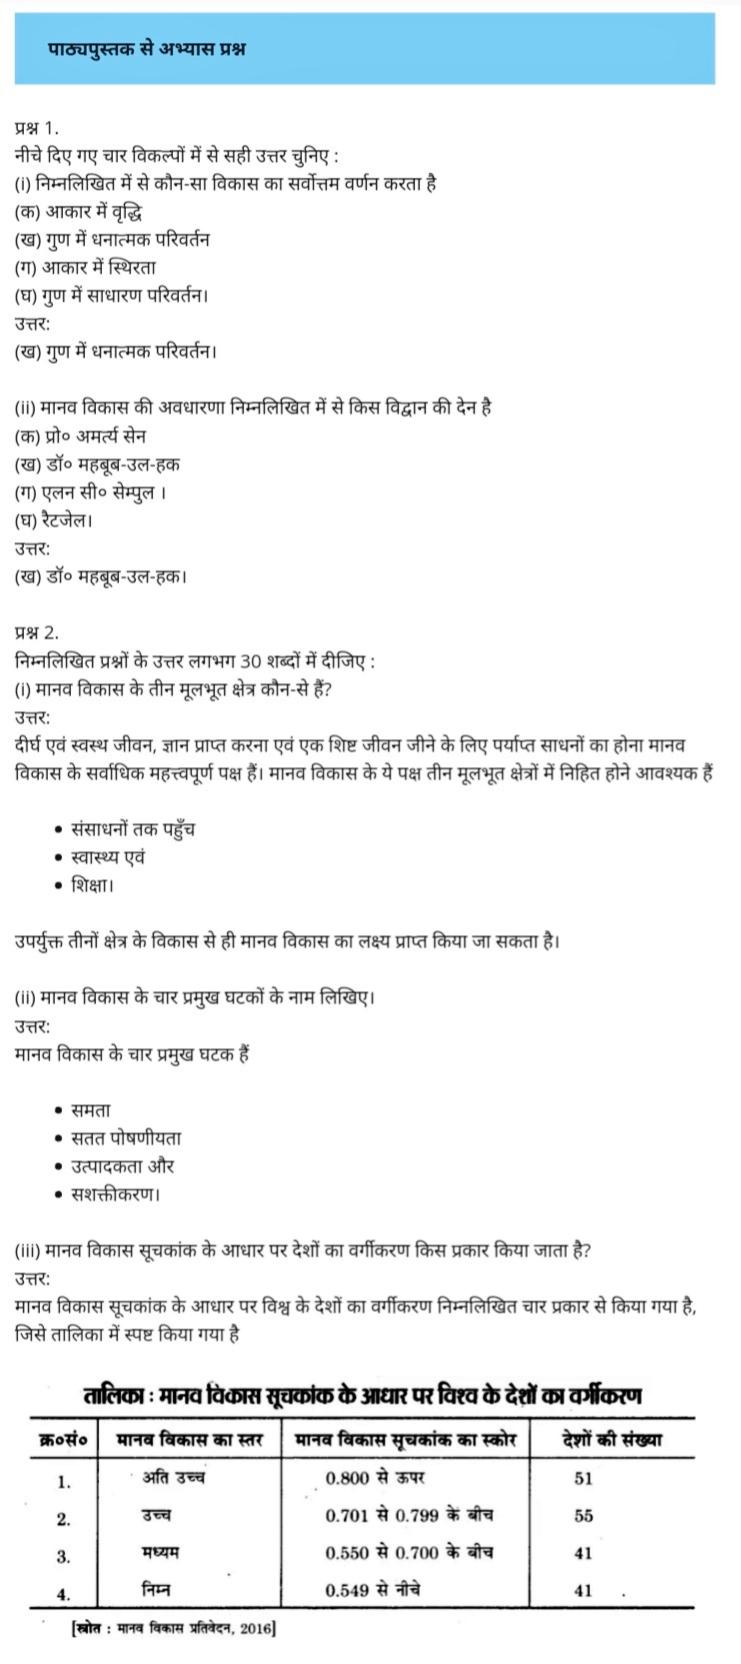 UP Board Solutions for Class 12 Geography Chapter 4 Human Development (मानव विकास)